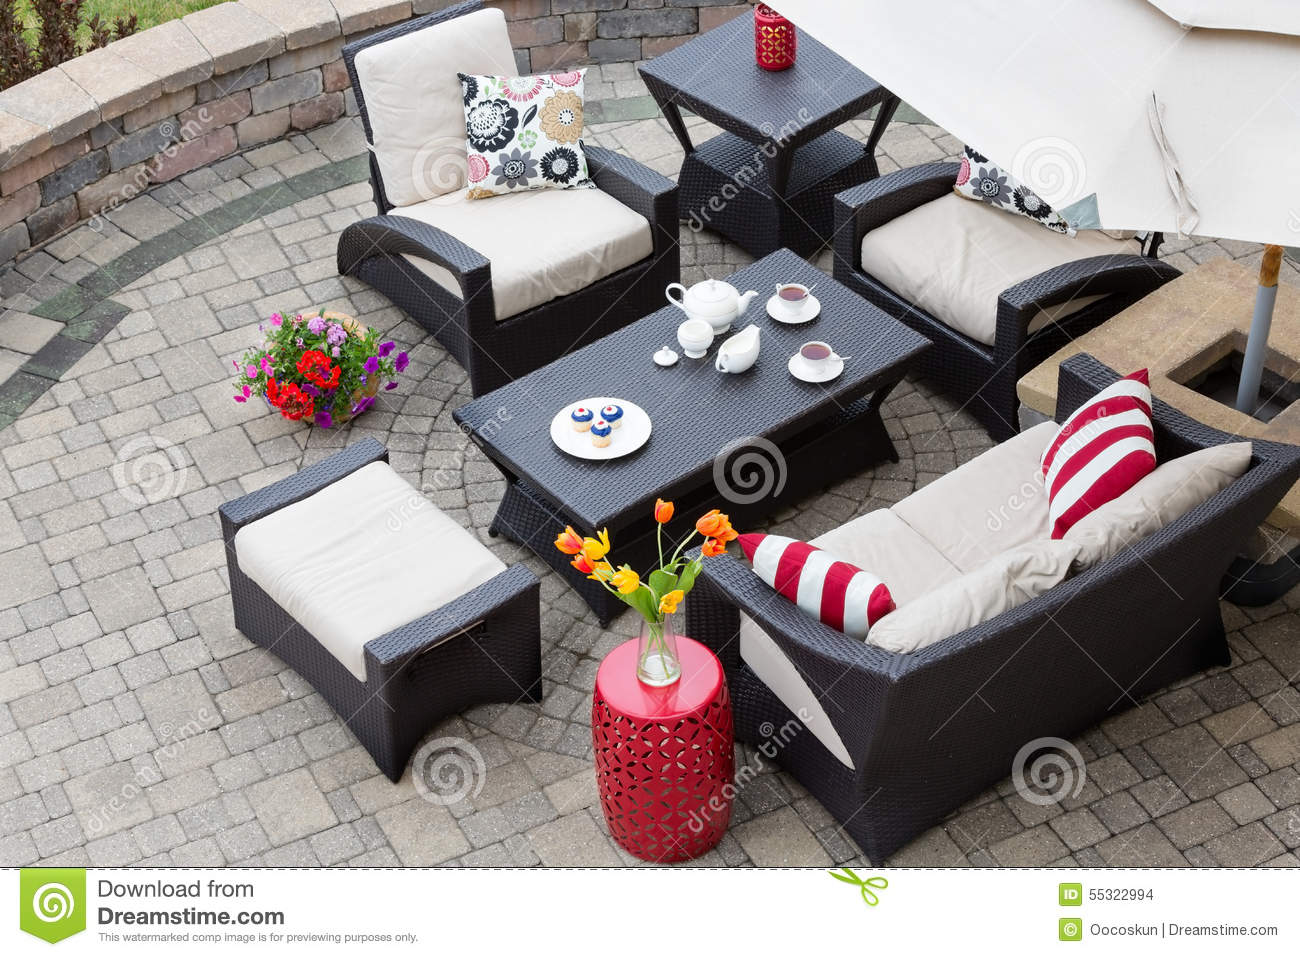 9 440 luxury patio furniture photos free royalty free stock photos from dreamstime